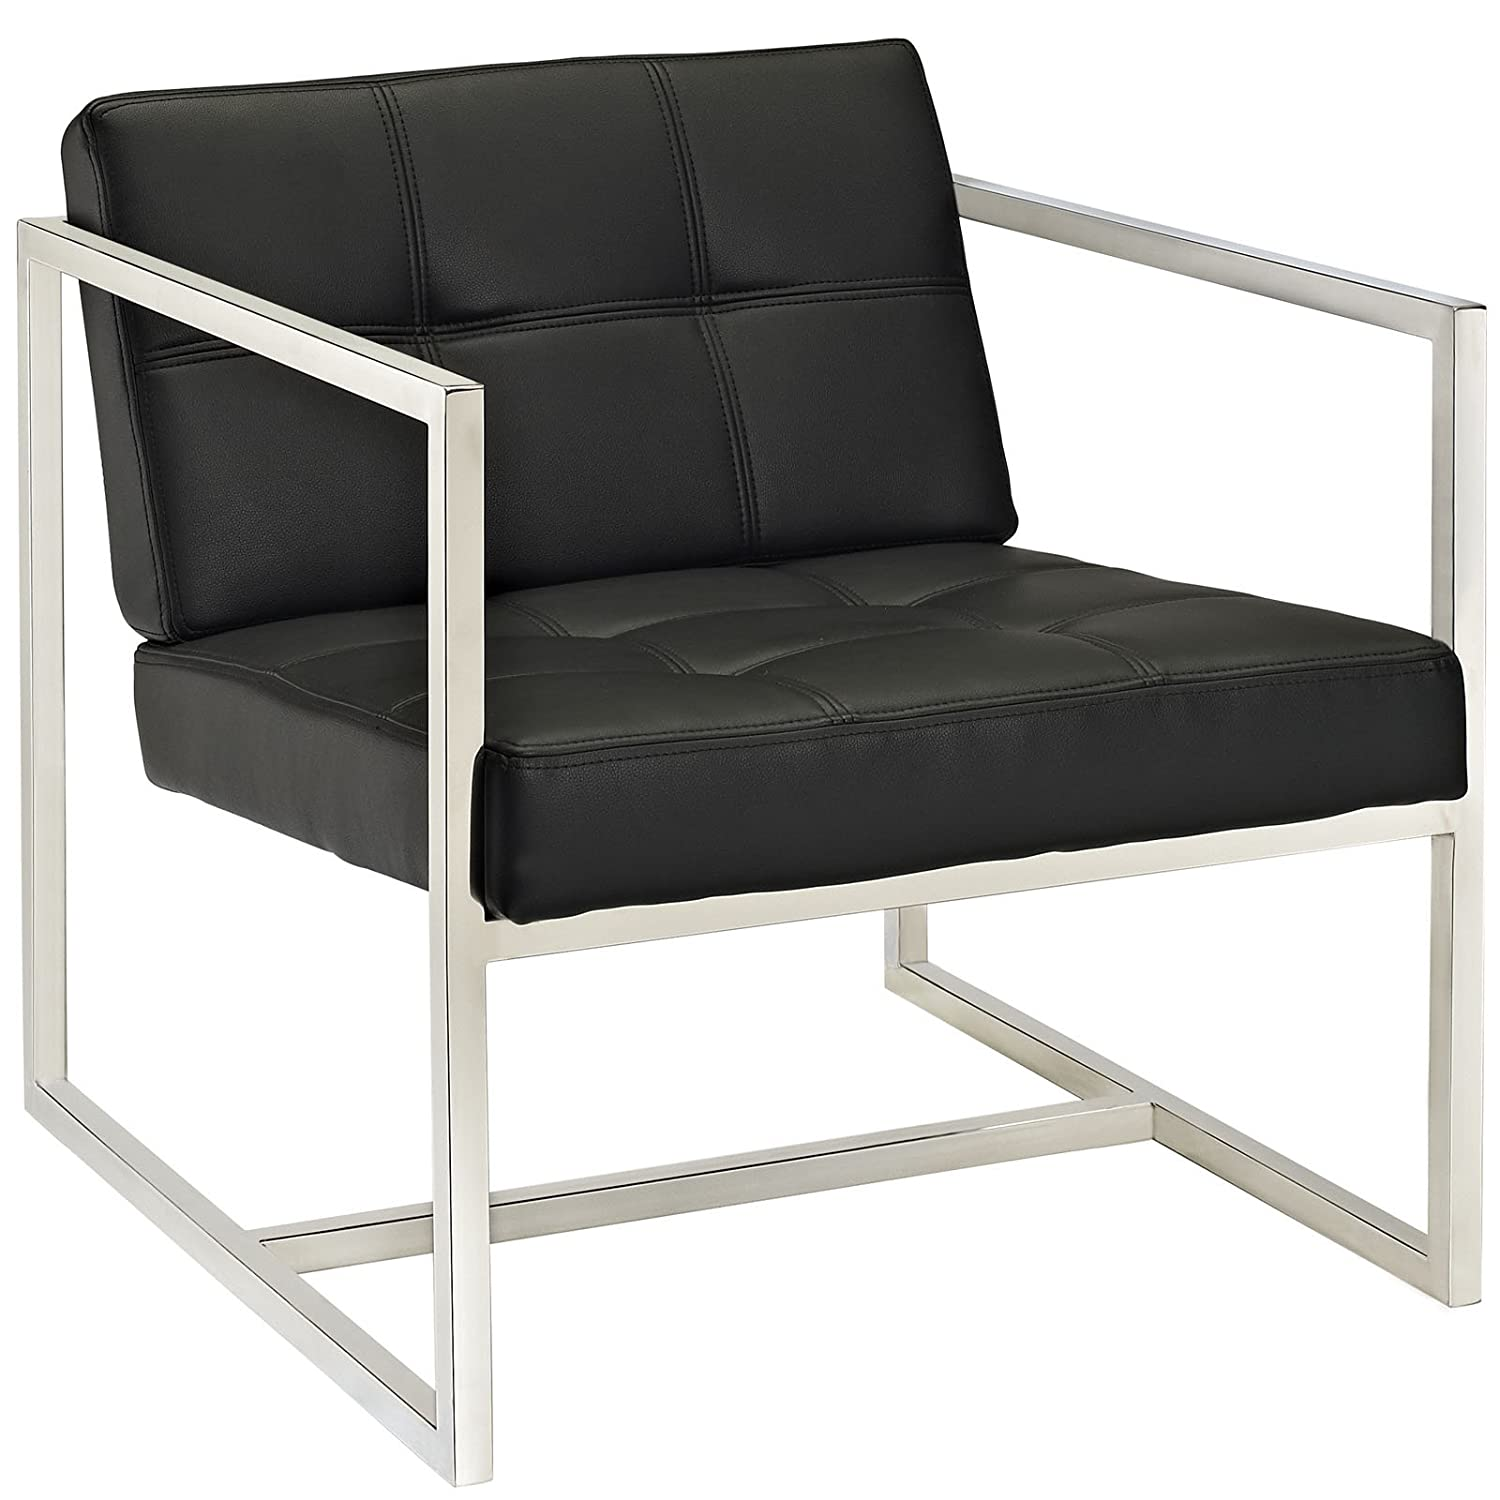 Amazon: Modway Hover Modern Reception Chair, Black: Kitchen & Dining